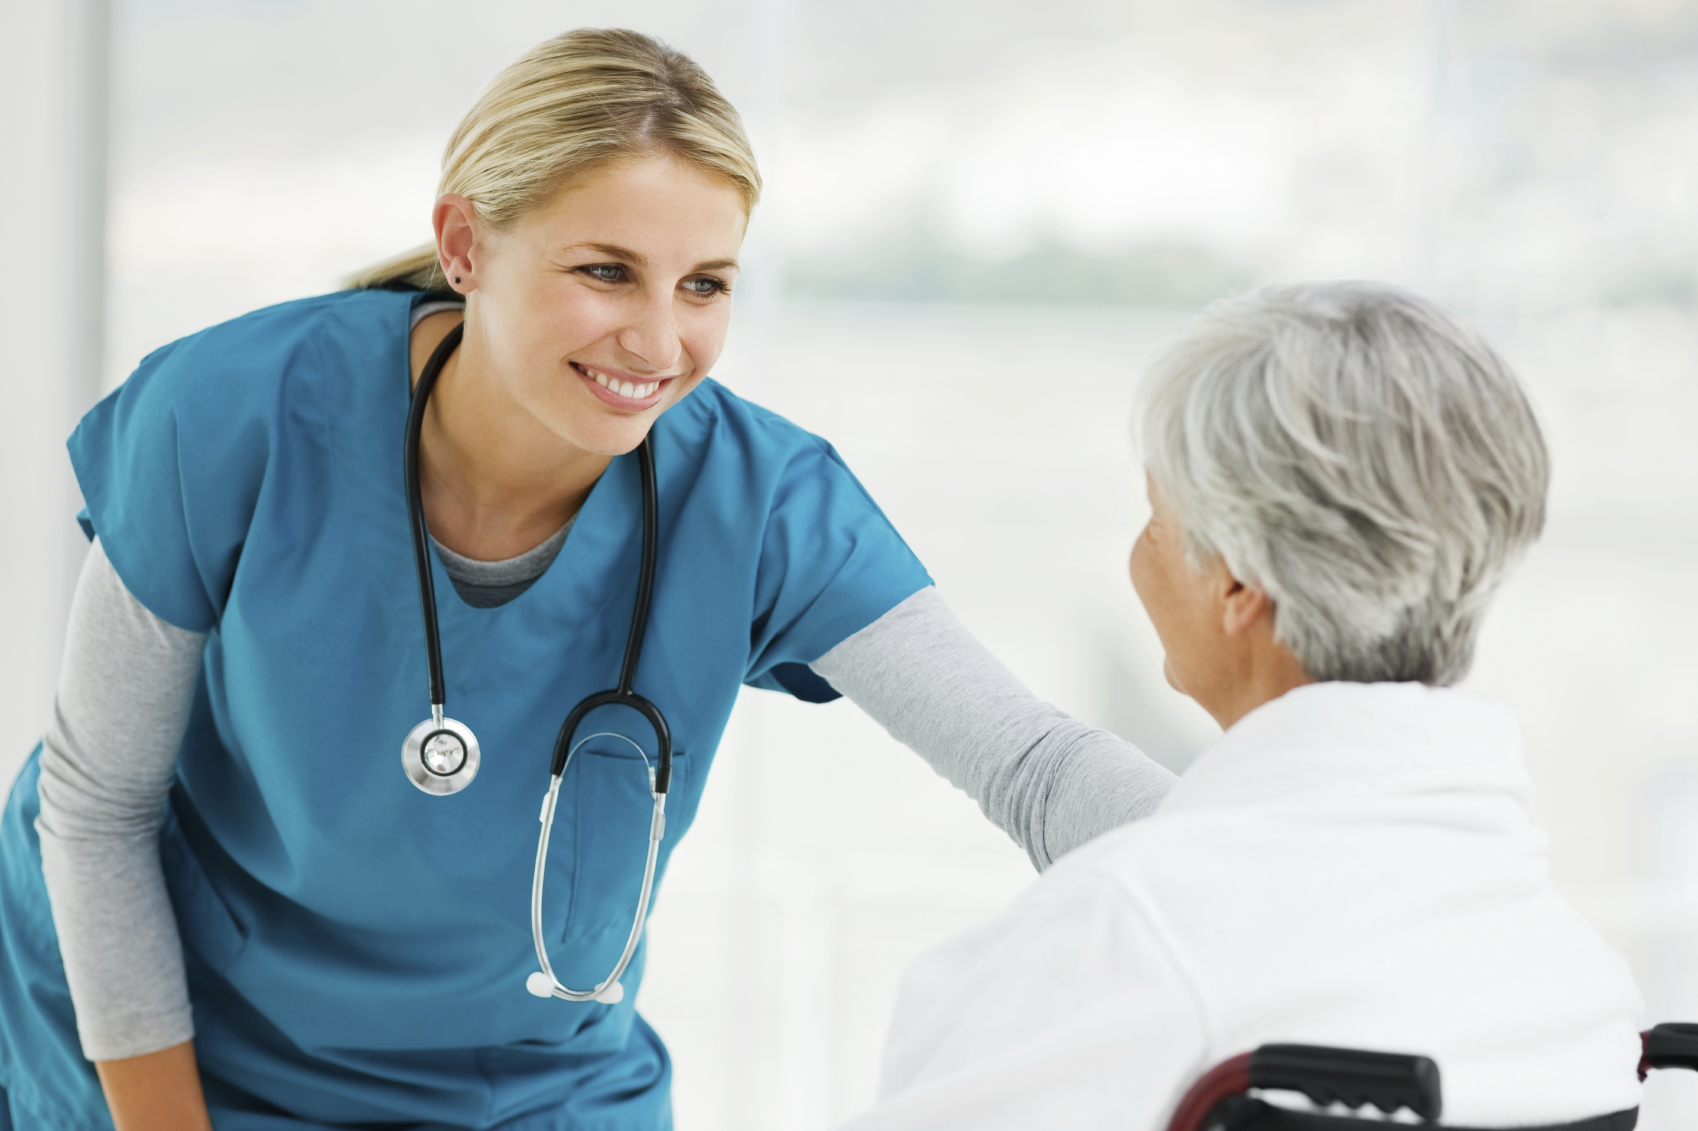 nurse and doctor relationship to the patient